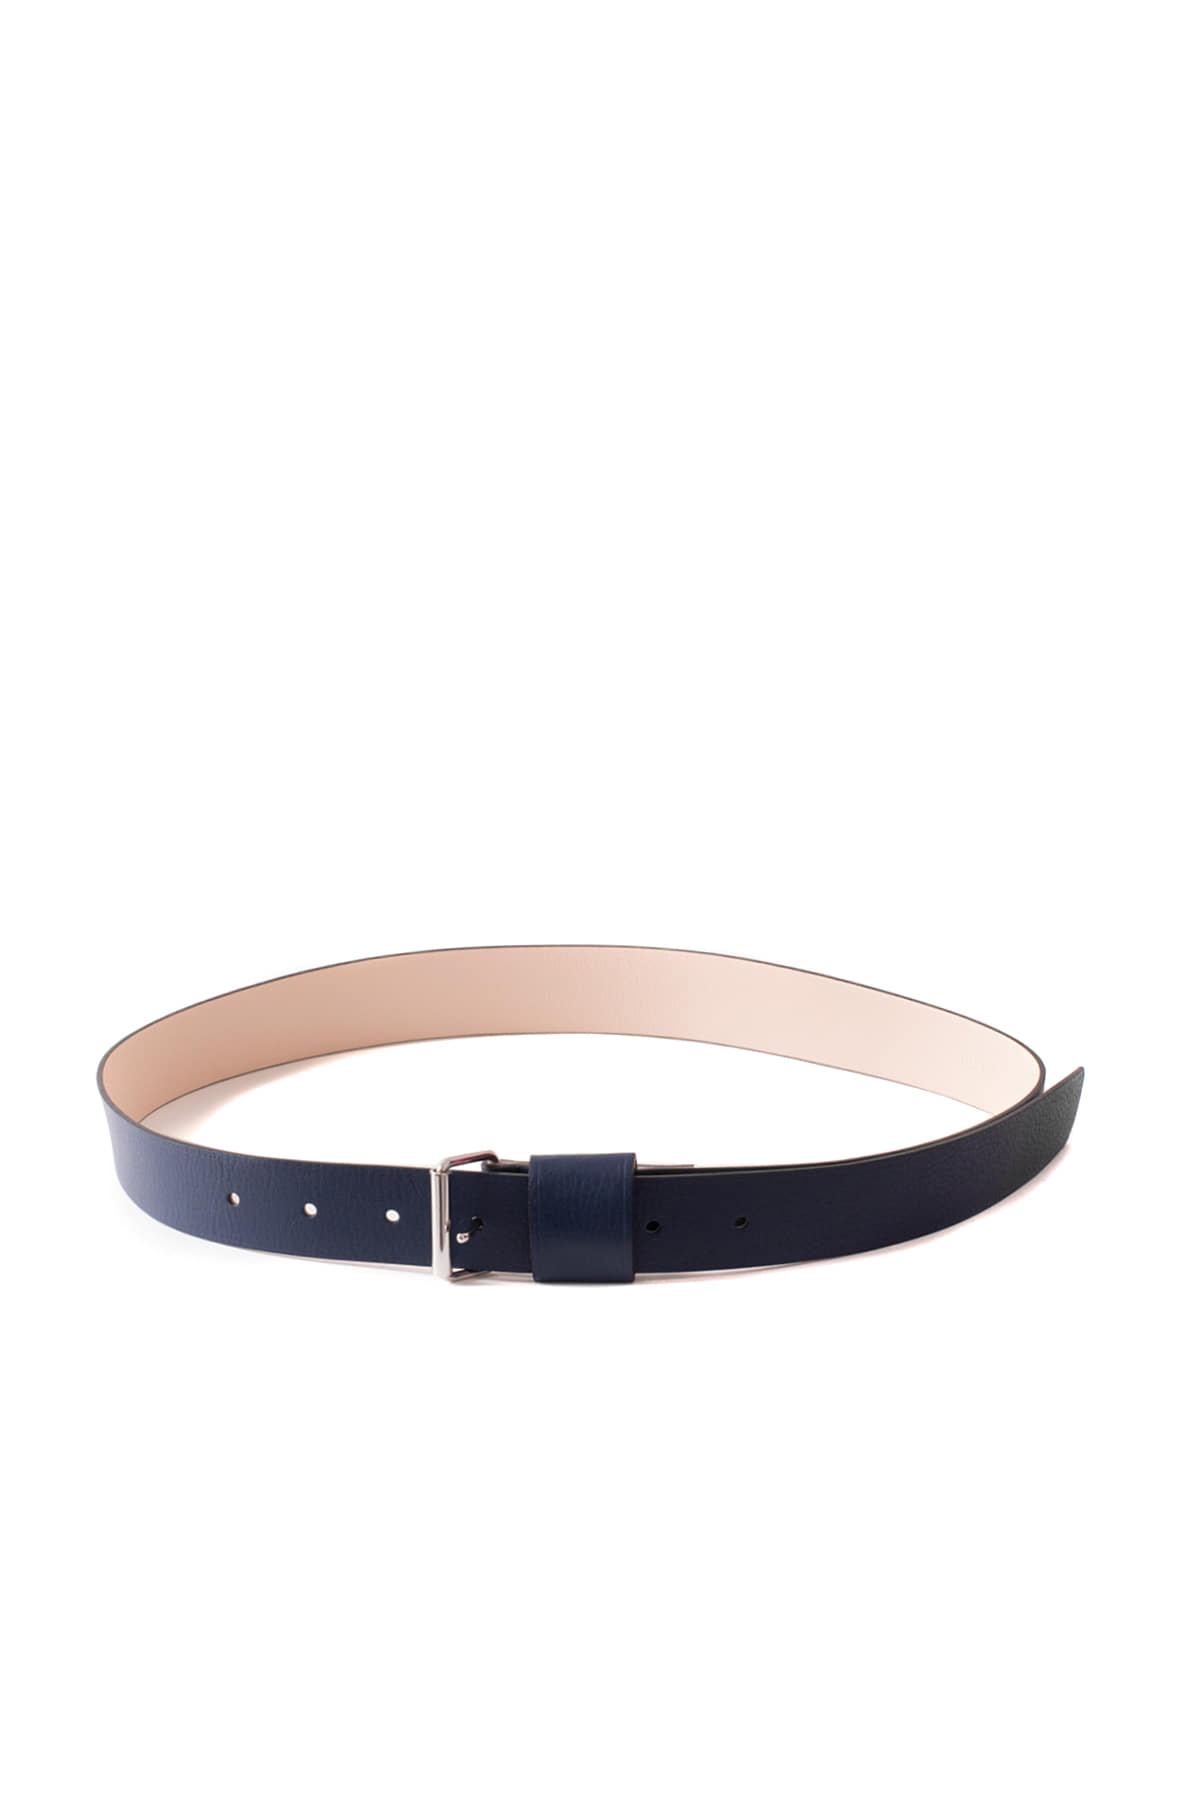 Sofie D'Hoore : Bi Colored Belt (Navy)